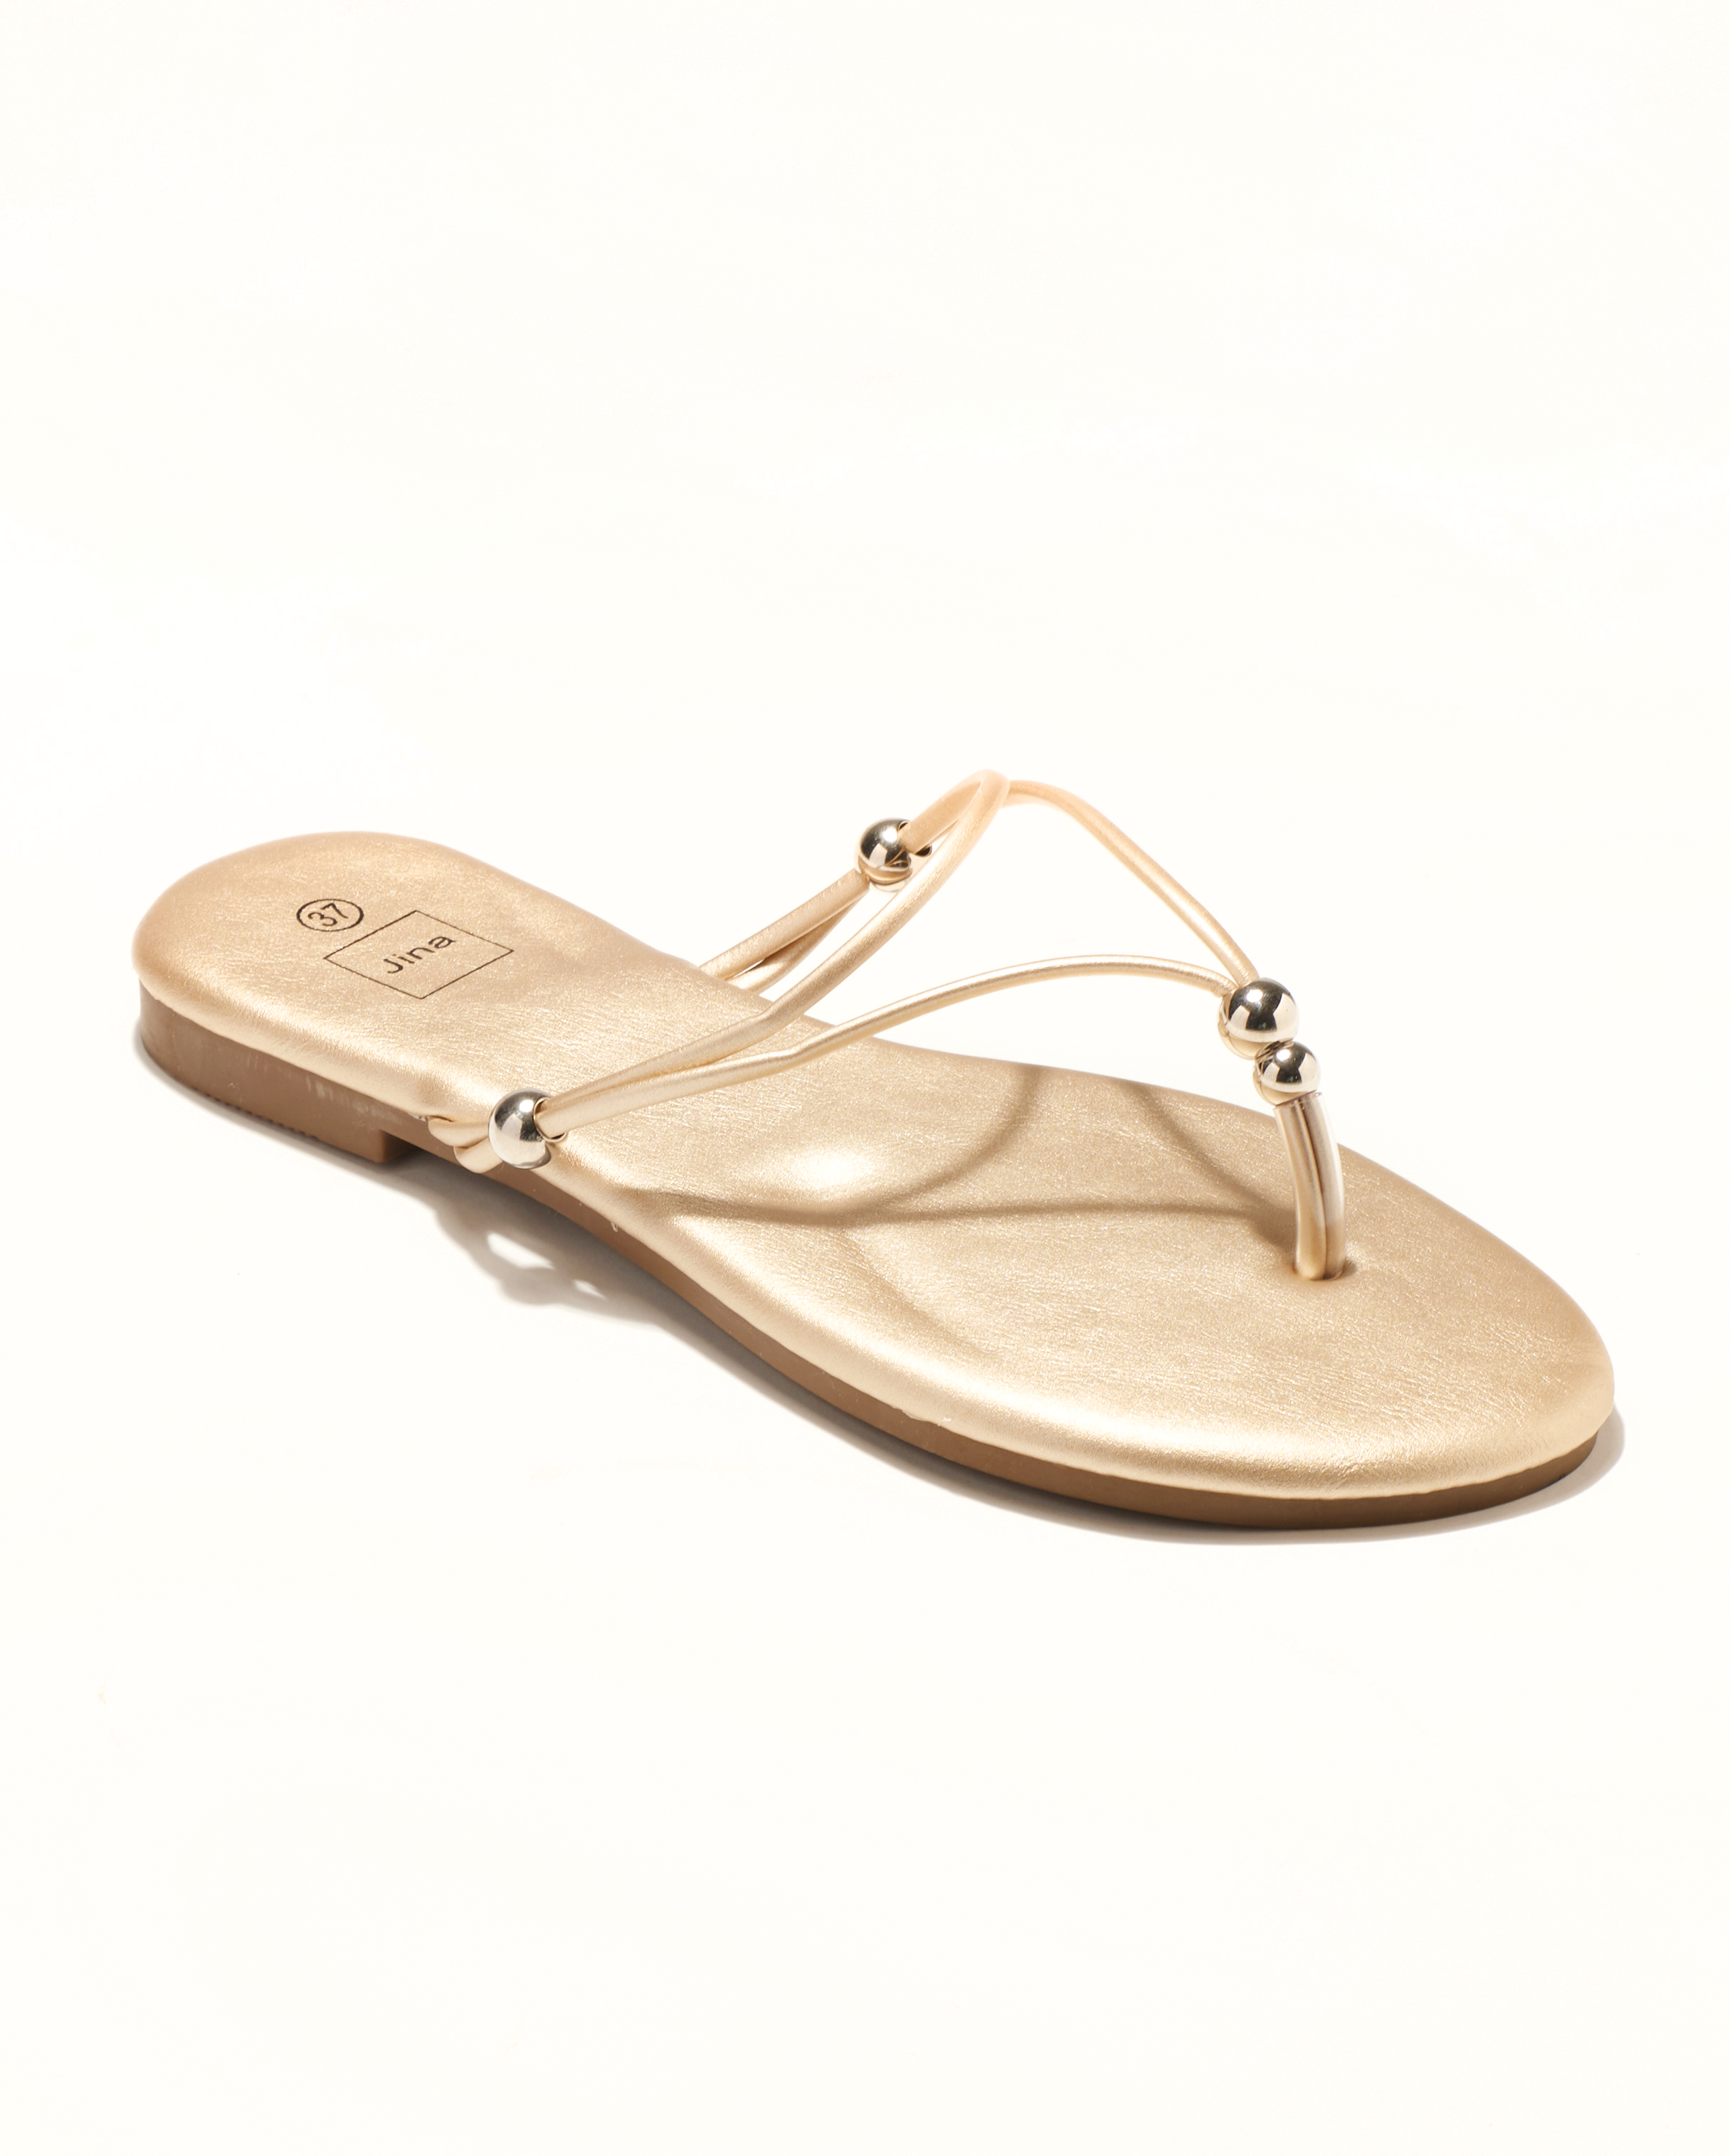 Mules Femme - Mule Plate Or Jina - Style 3 Zh P05